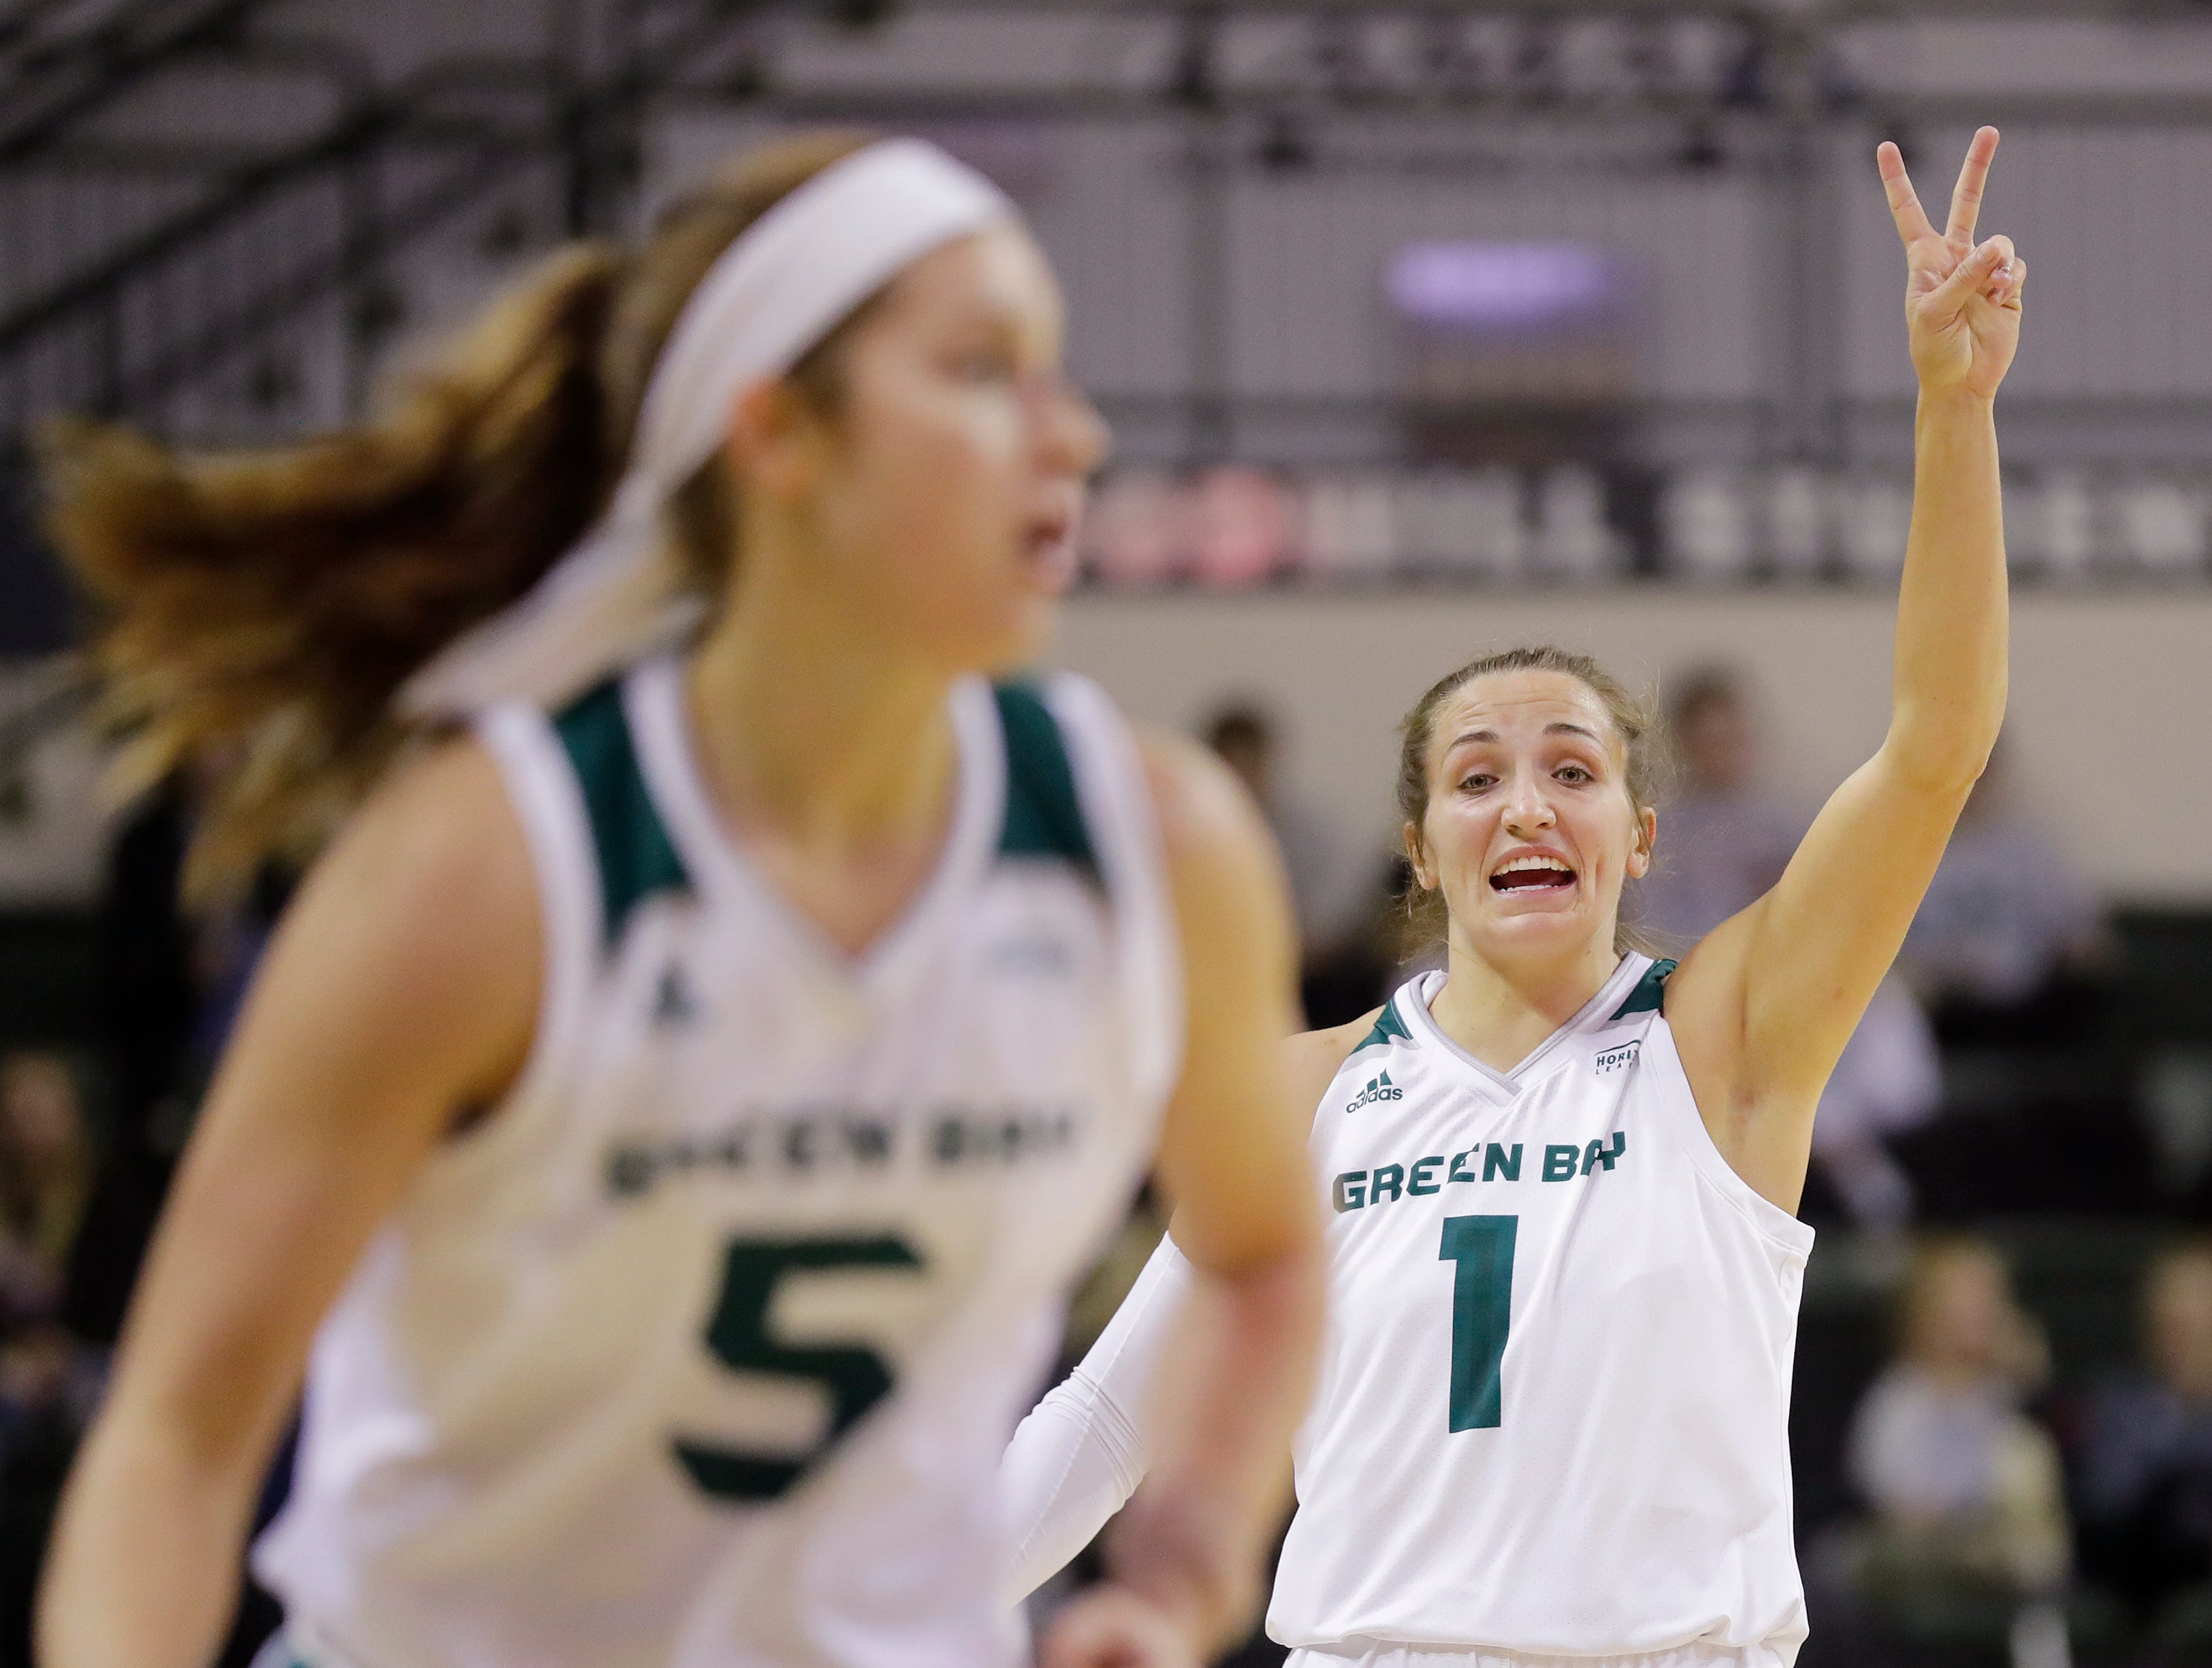 Green Bay Phoenix guard Jen Wellnitz (1) calls out to guard Laken James (5) in a women's NCAA basketball game against the Northwestern Wildcats at the Kress Center on Tuesday, November 6, 2018 in Green Bay, Wis.